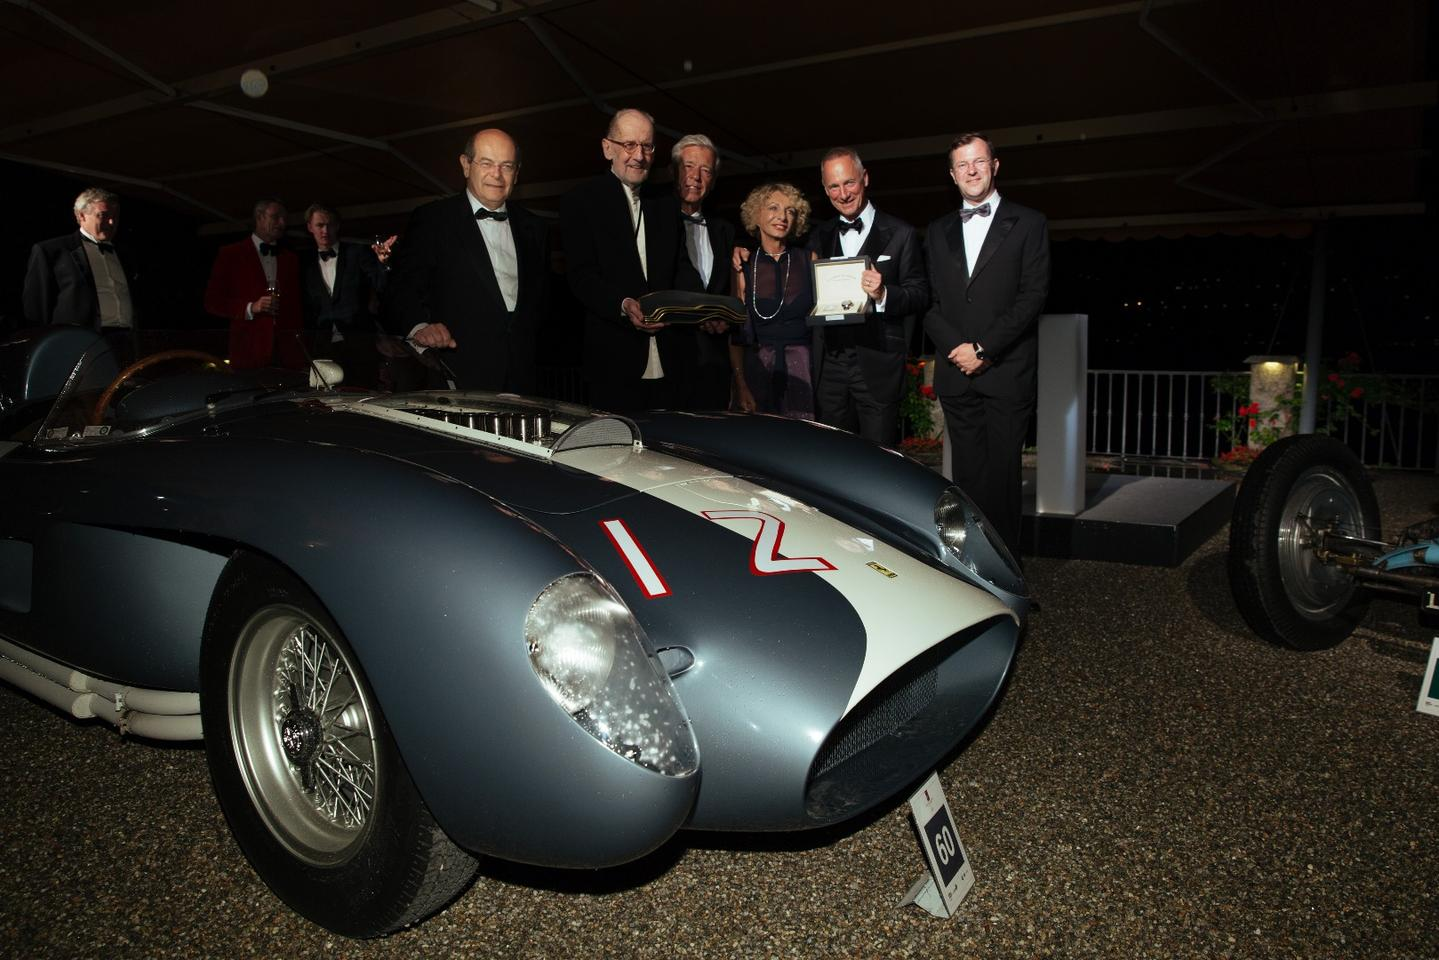 Andreas Mohringer's recently restored 1958 Ferrari 335 Sport Spider won the Trofeo BMW Group, the outright Best of Show award decided by the jury.